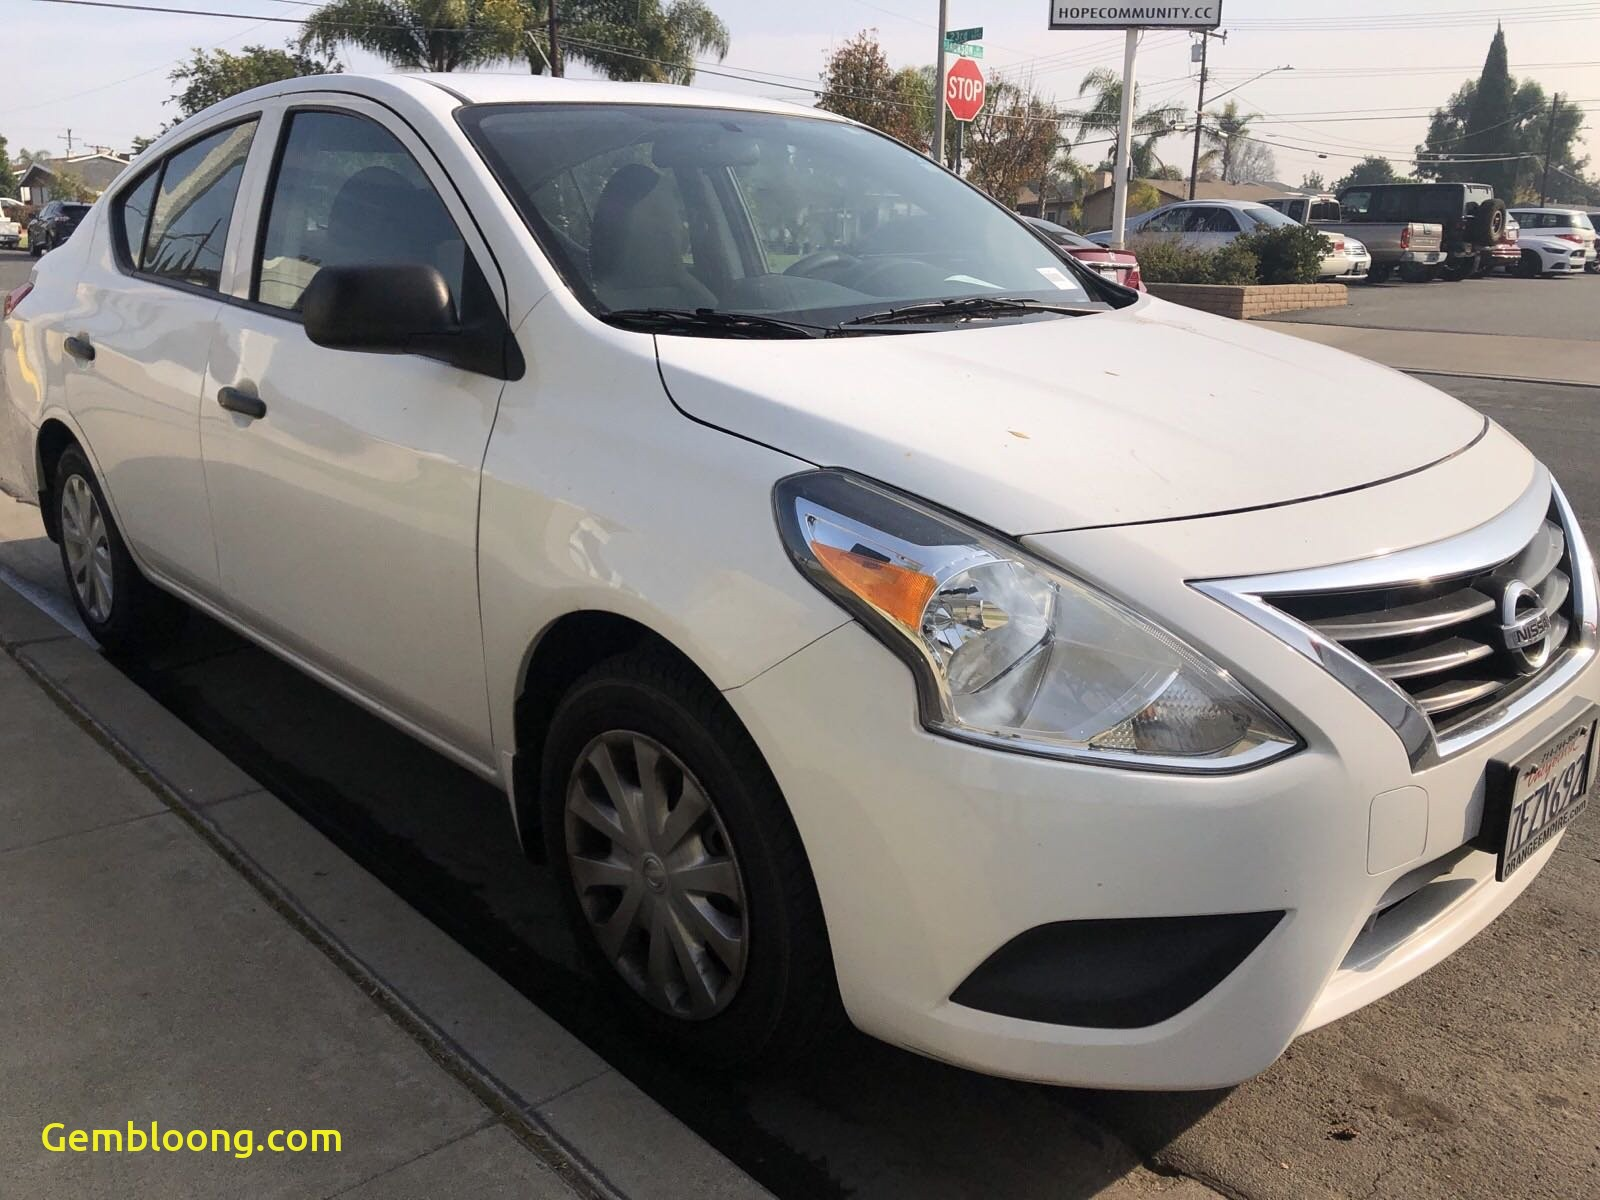 Cars for Sale Under 10000 In Ct Lovely Used Vehicles Between $1 001 and $10 000 for Sale In